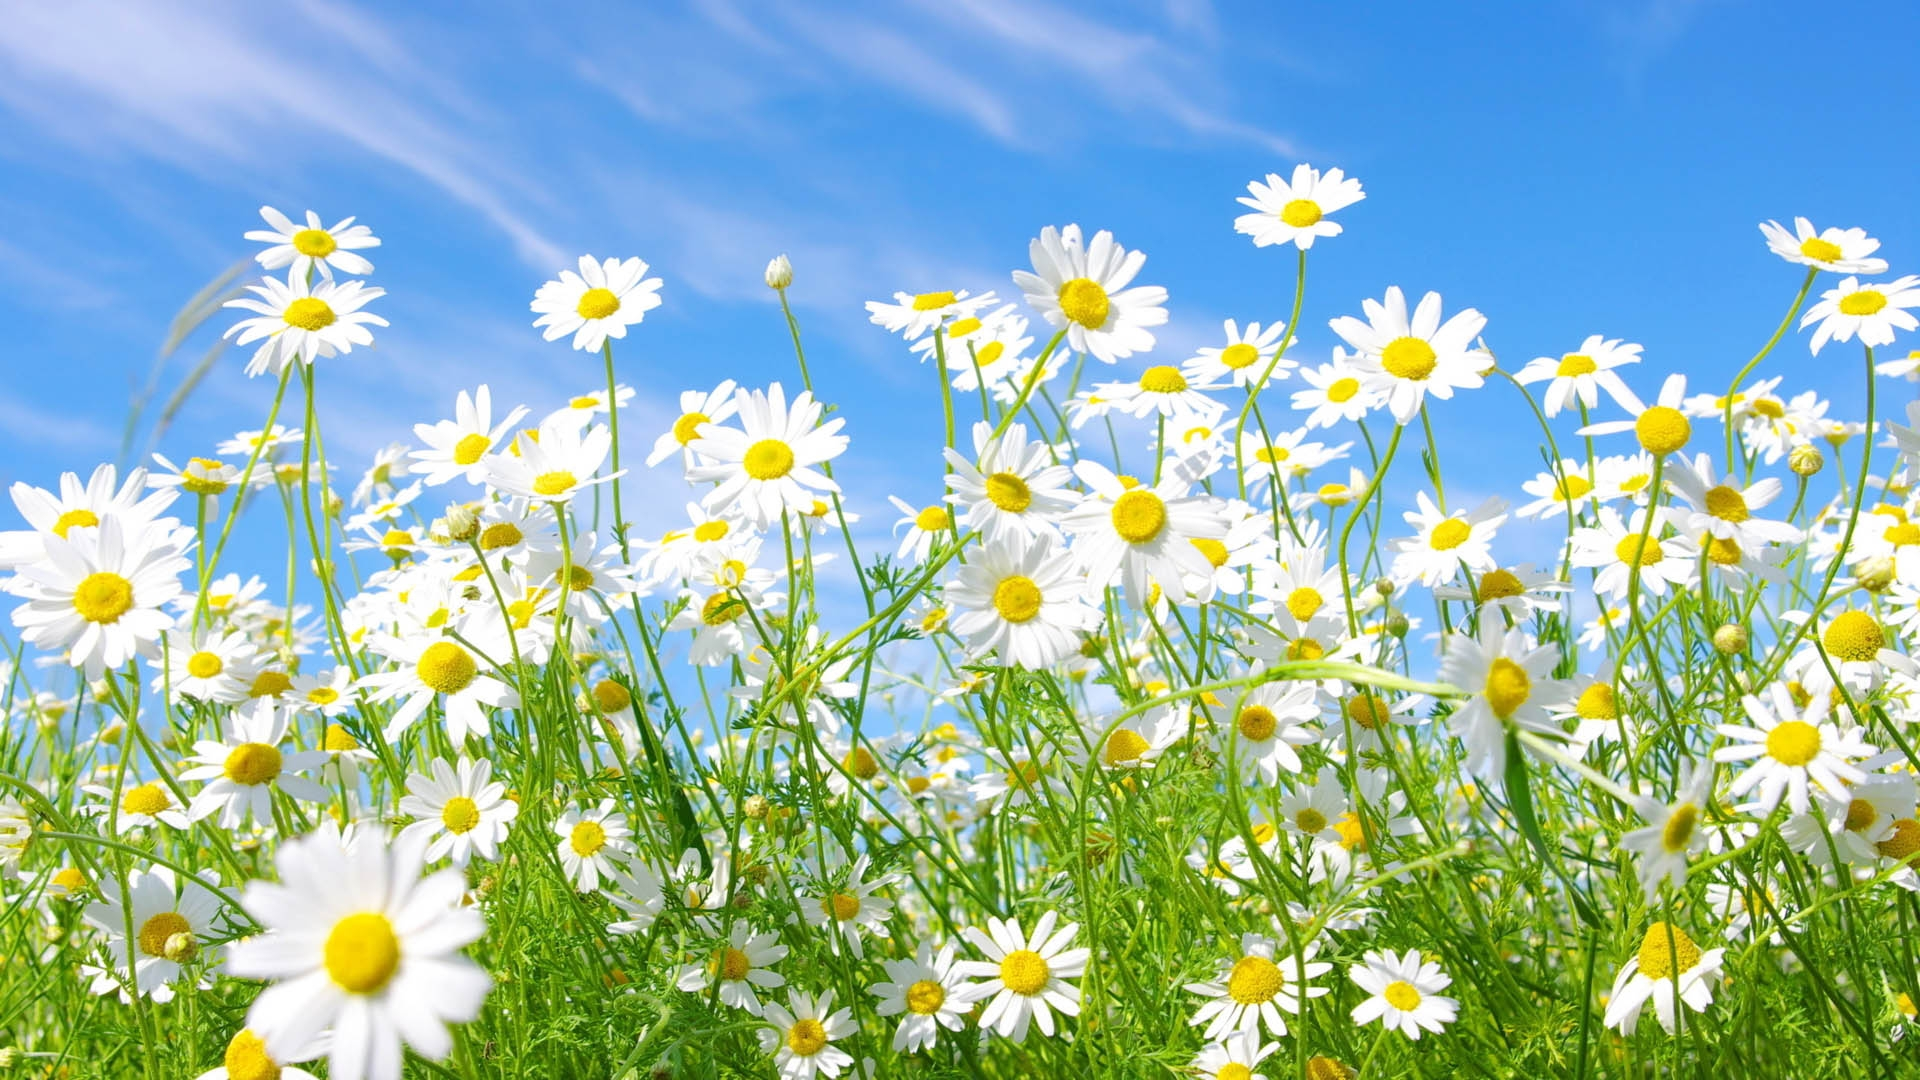 grass field background with flowers. Get The Latest Flowers, Daisies, Field News, Pictures And Videos Learn All About From Wallpapers4u.org, Your Wallpaper News Grass Background With Flowers